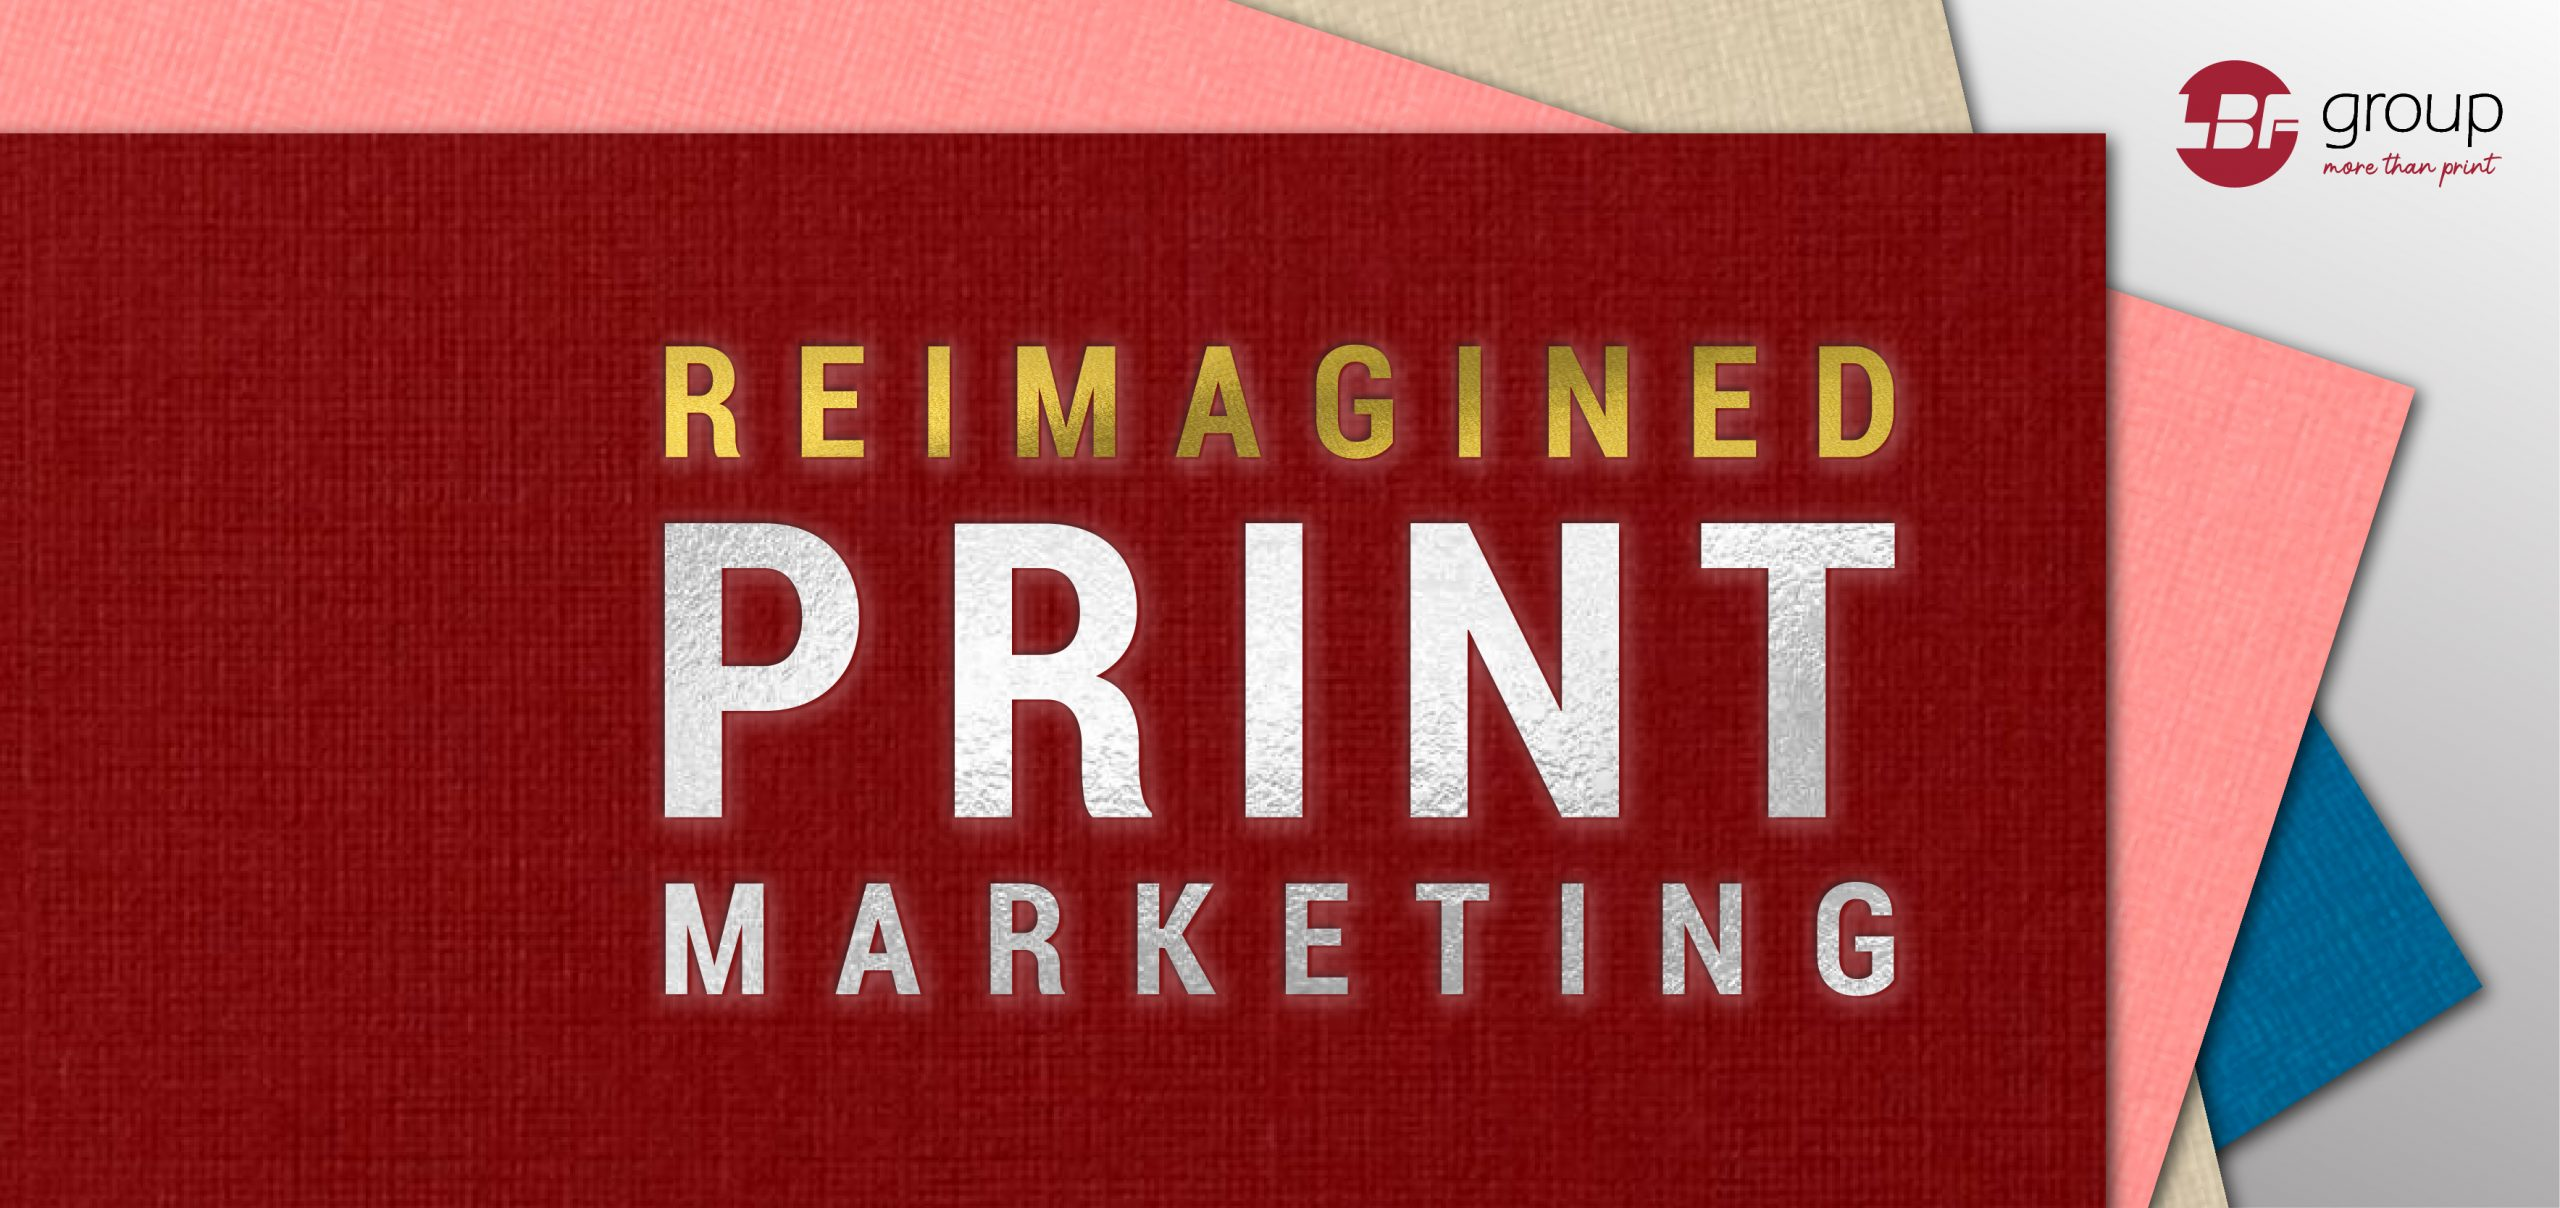 Stand Out with Reimagined Print Marketing